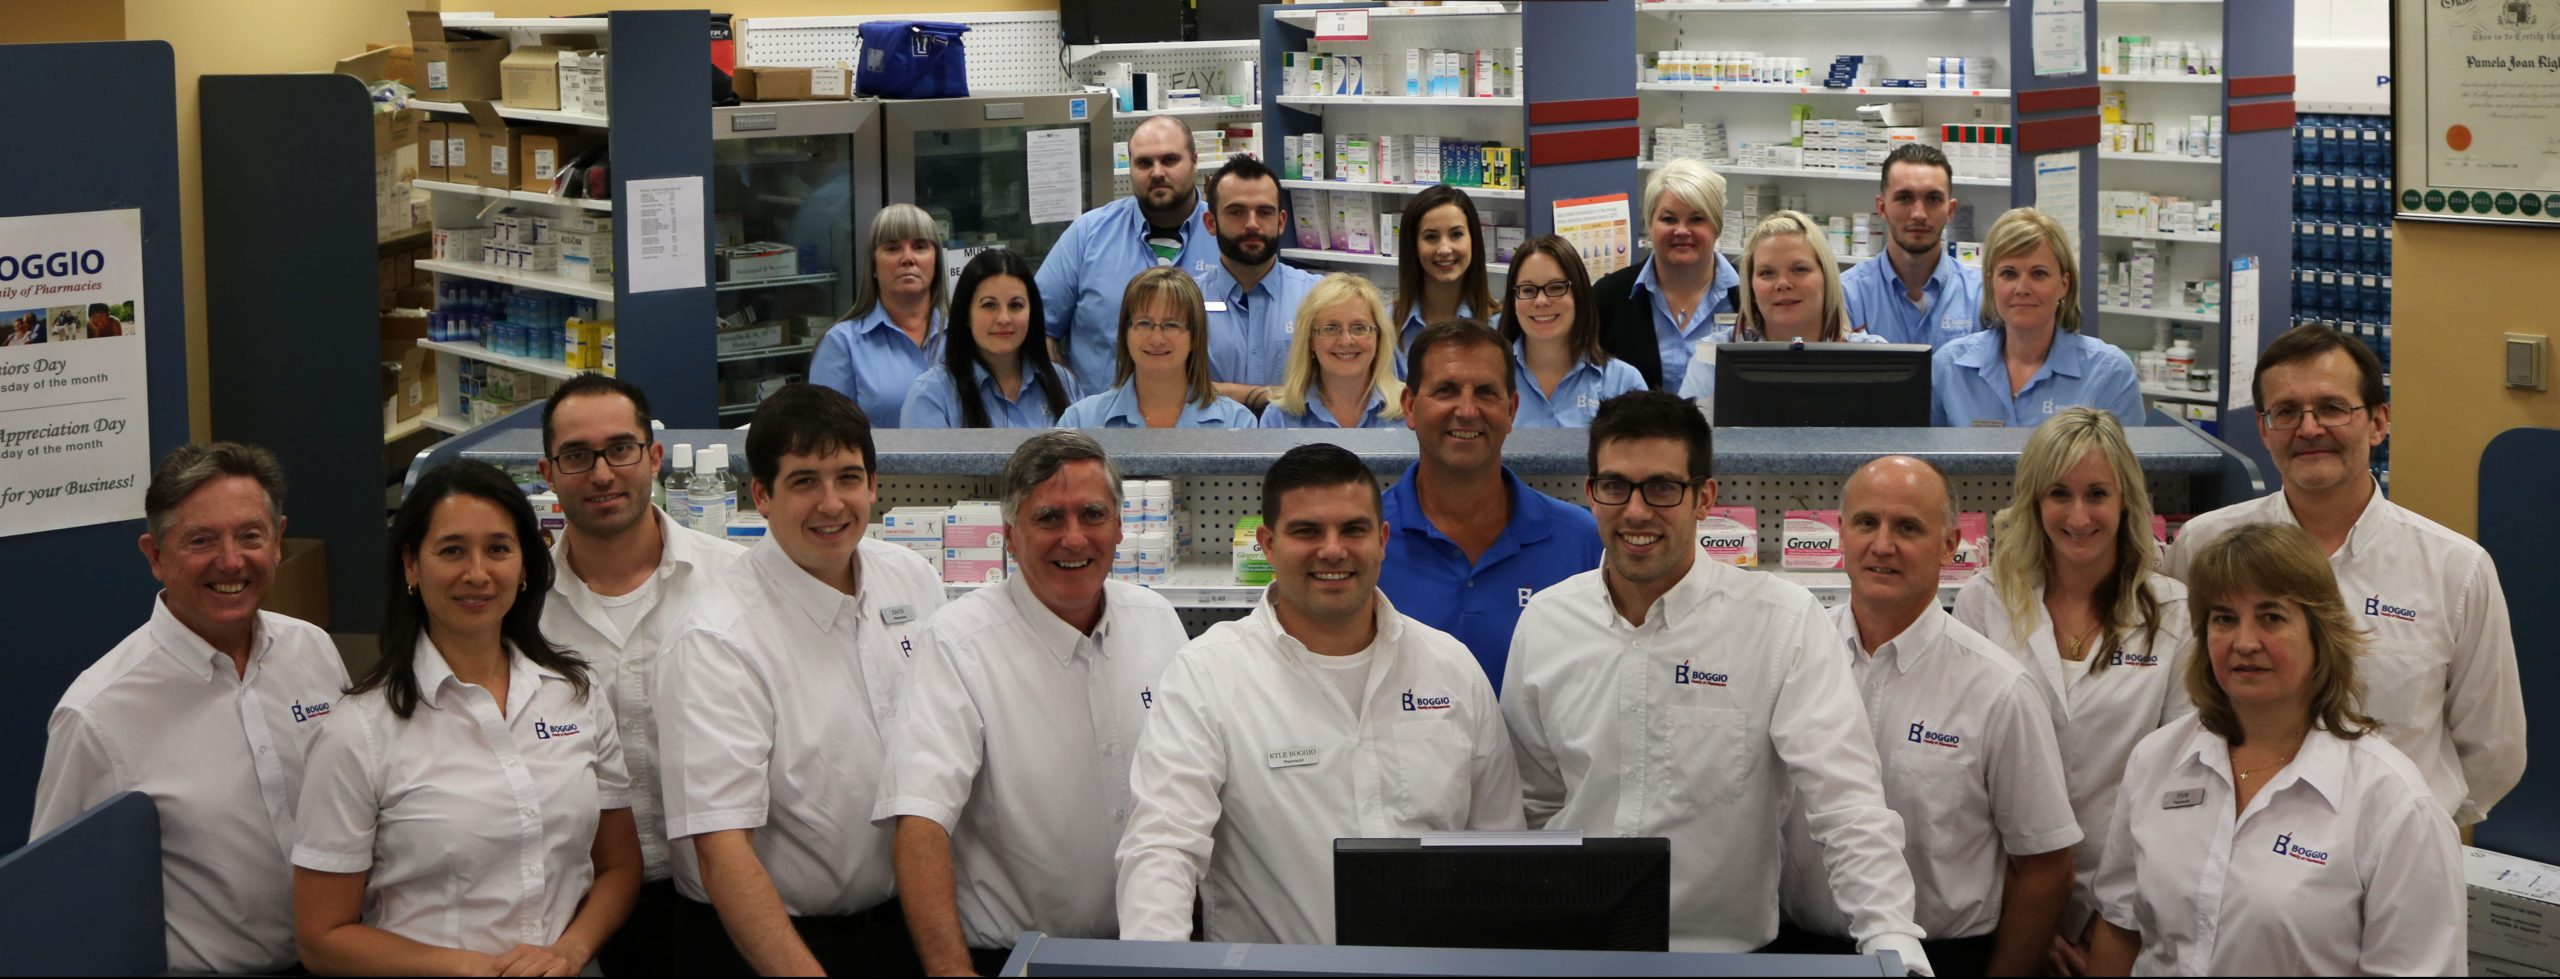 Our pharmacists are friendly and always willing to answer your questions!